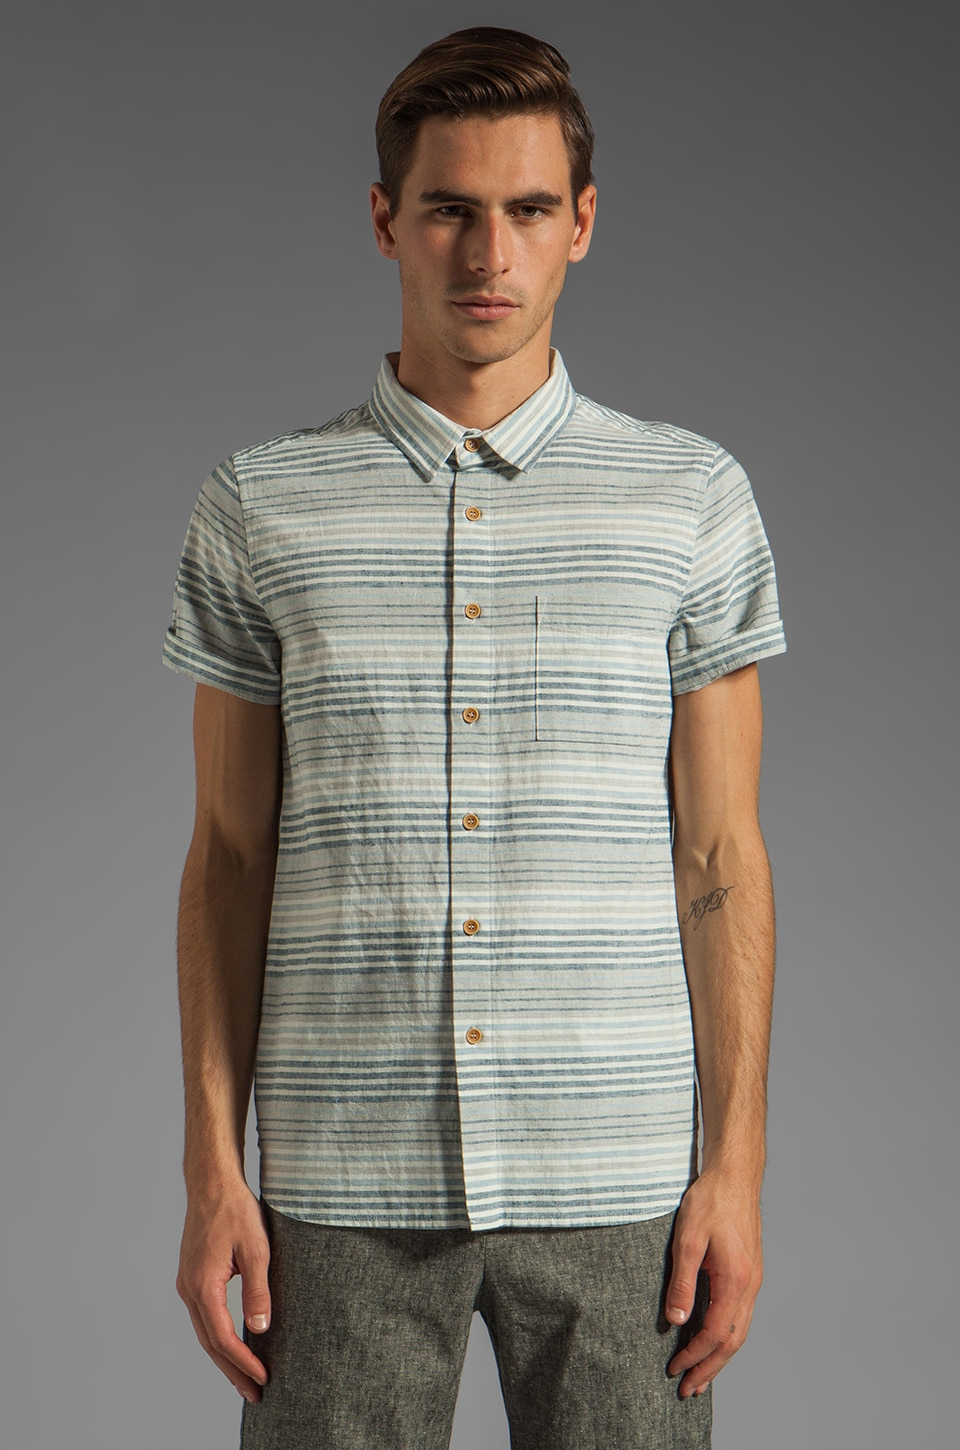 TOVAR Wellinton Button Up in Blue Stripe